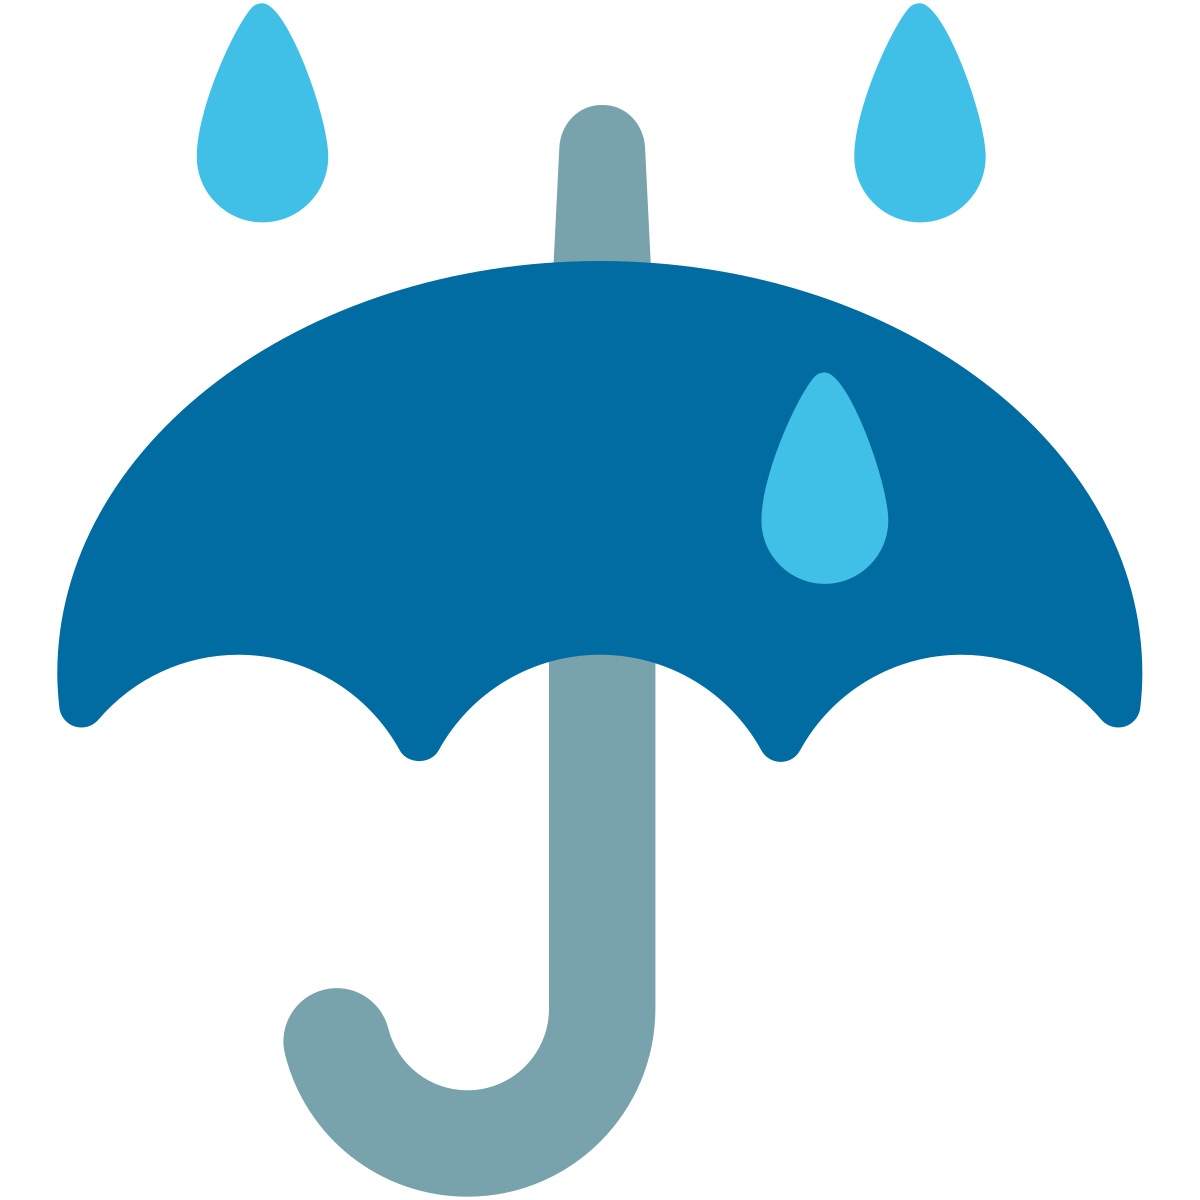 wiktionary. Clipart umbrella turquoise